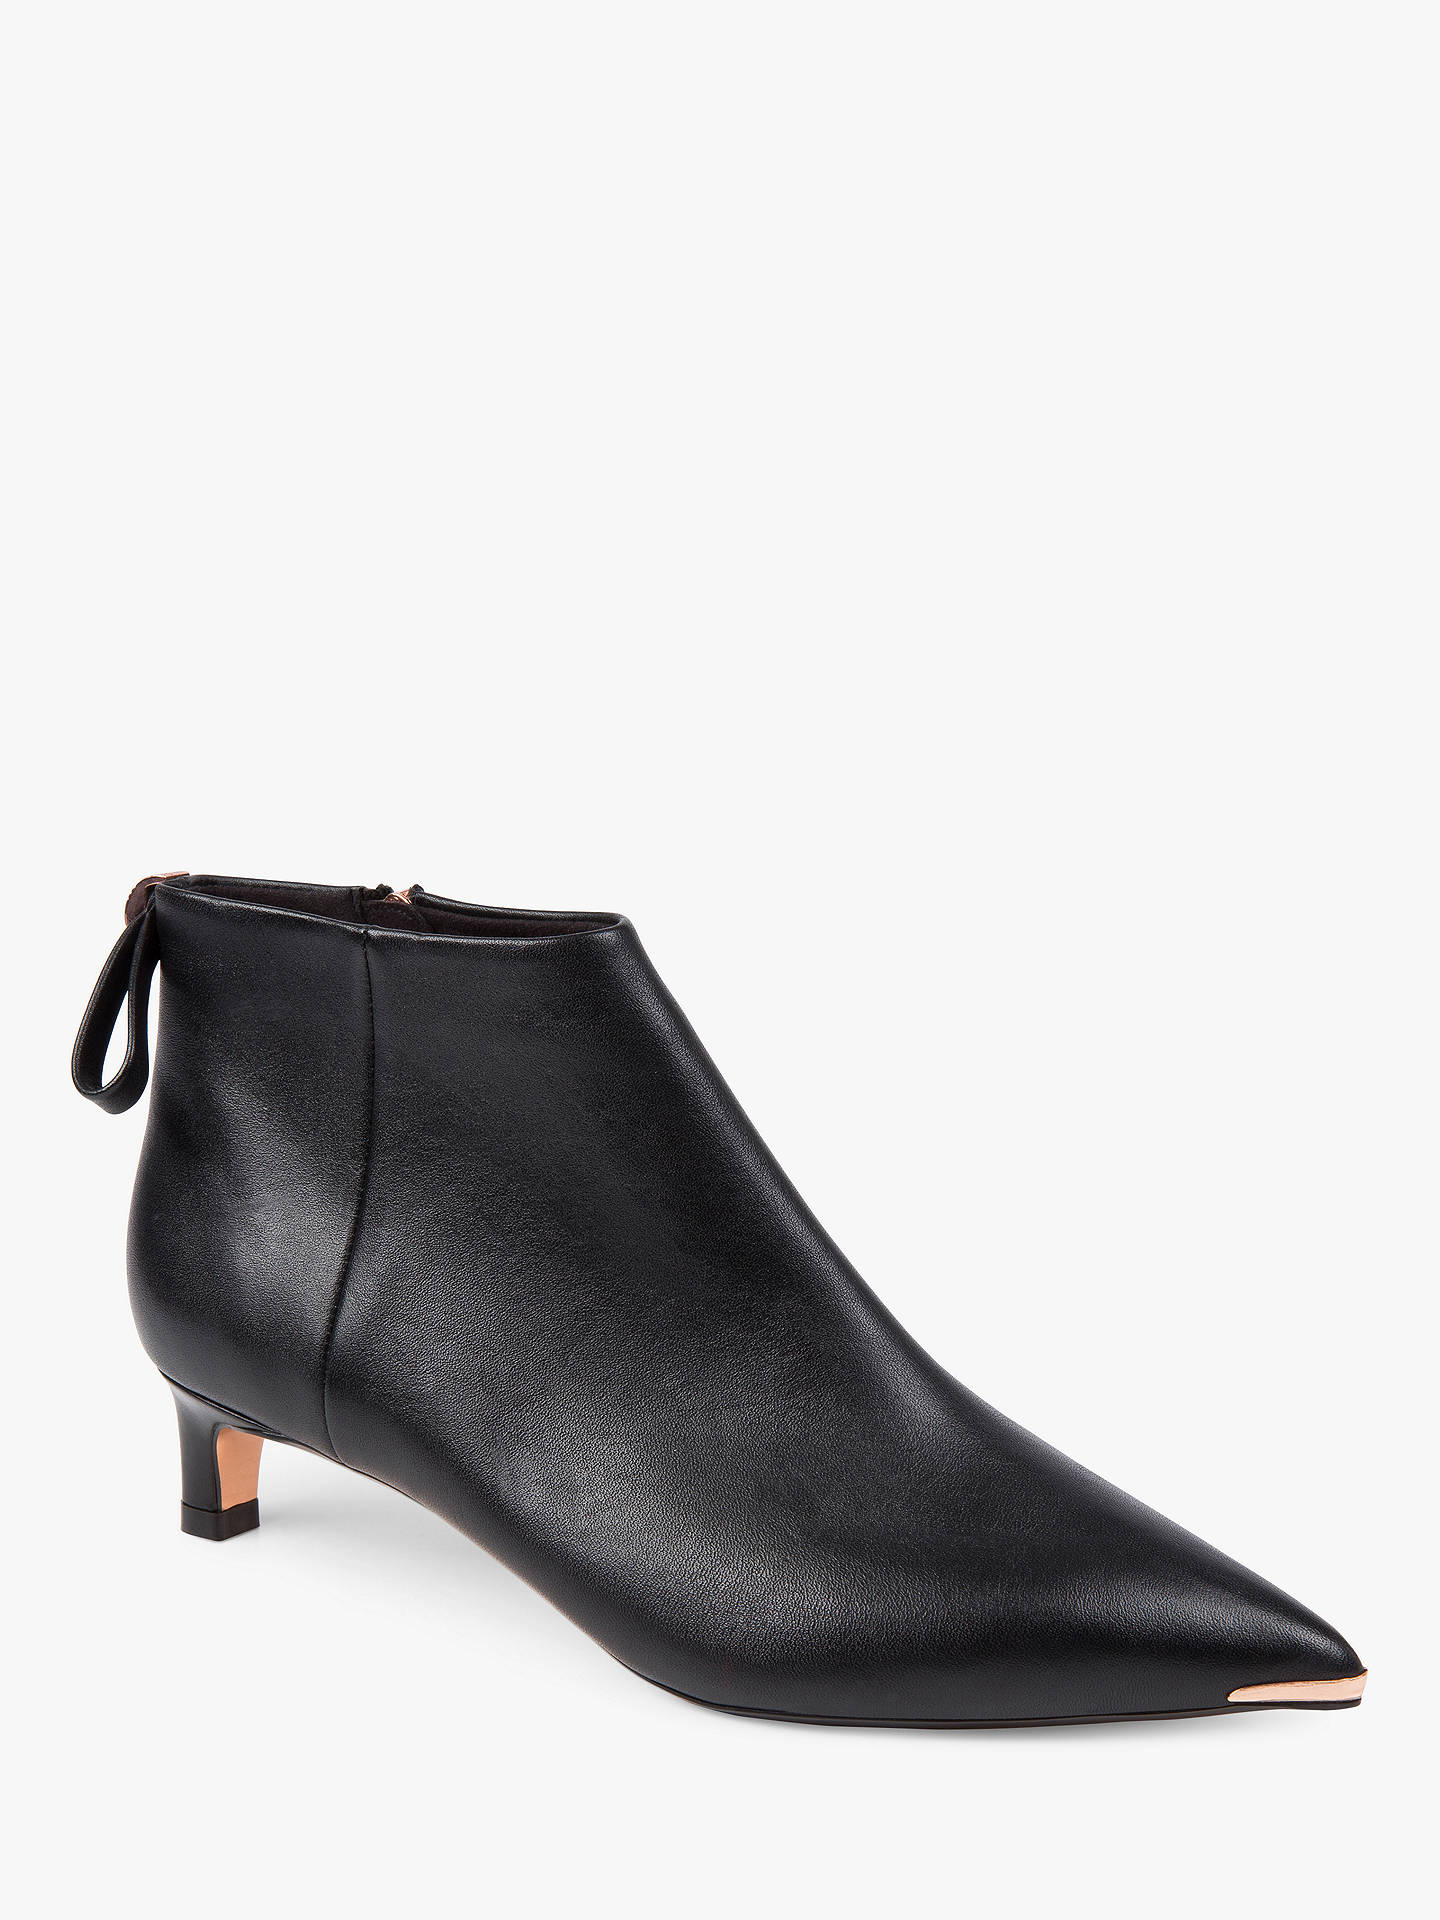 preview of sale super cute Ted Baker Amaedi Kitten Heel Ankle Boots, Black at John ...